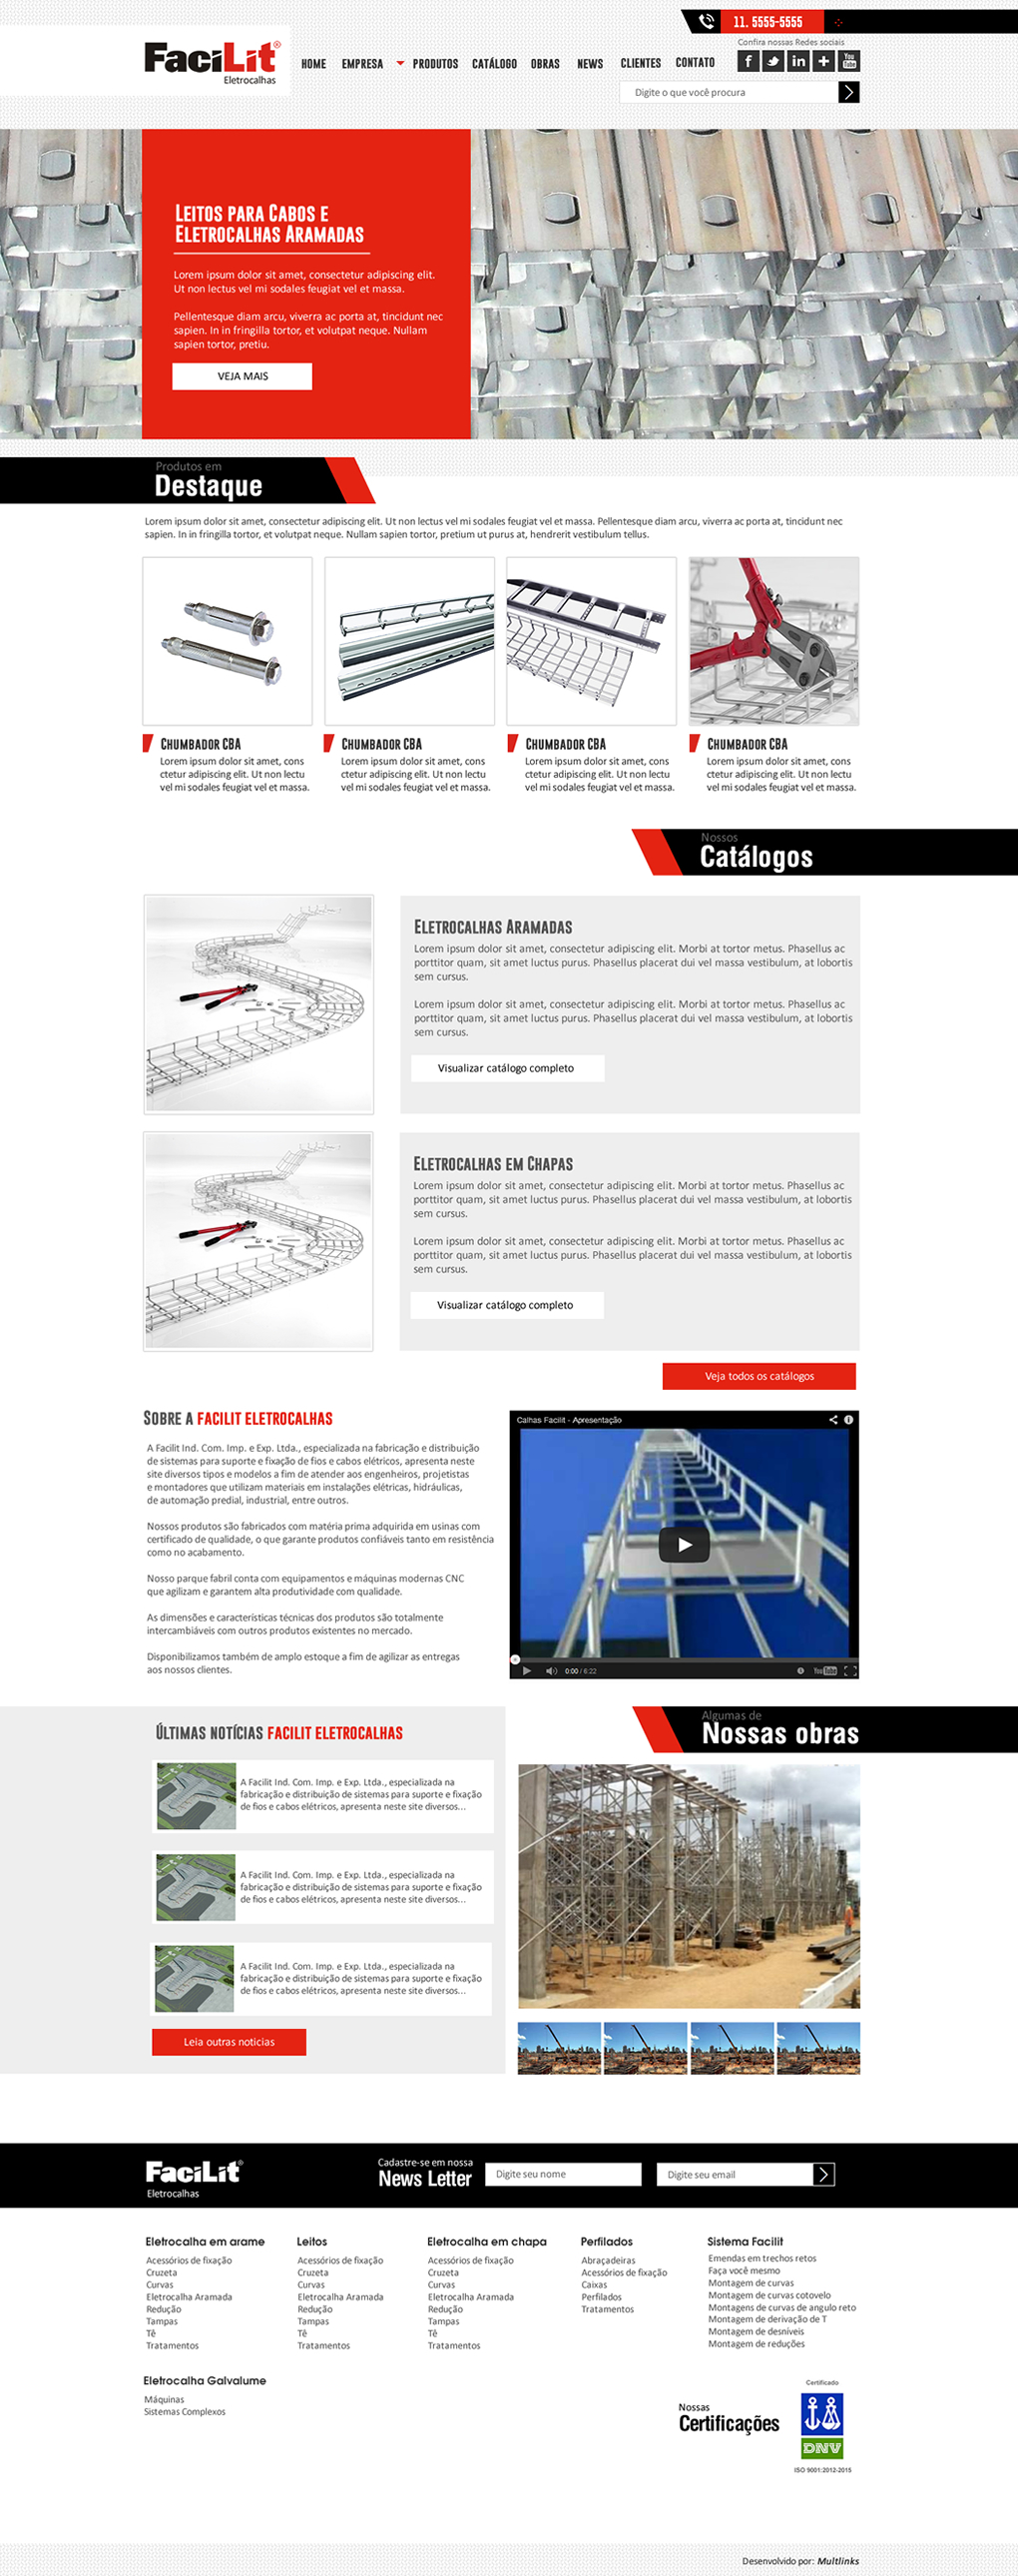 criacao-de-sites-facilit